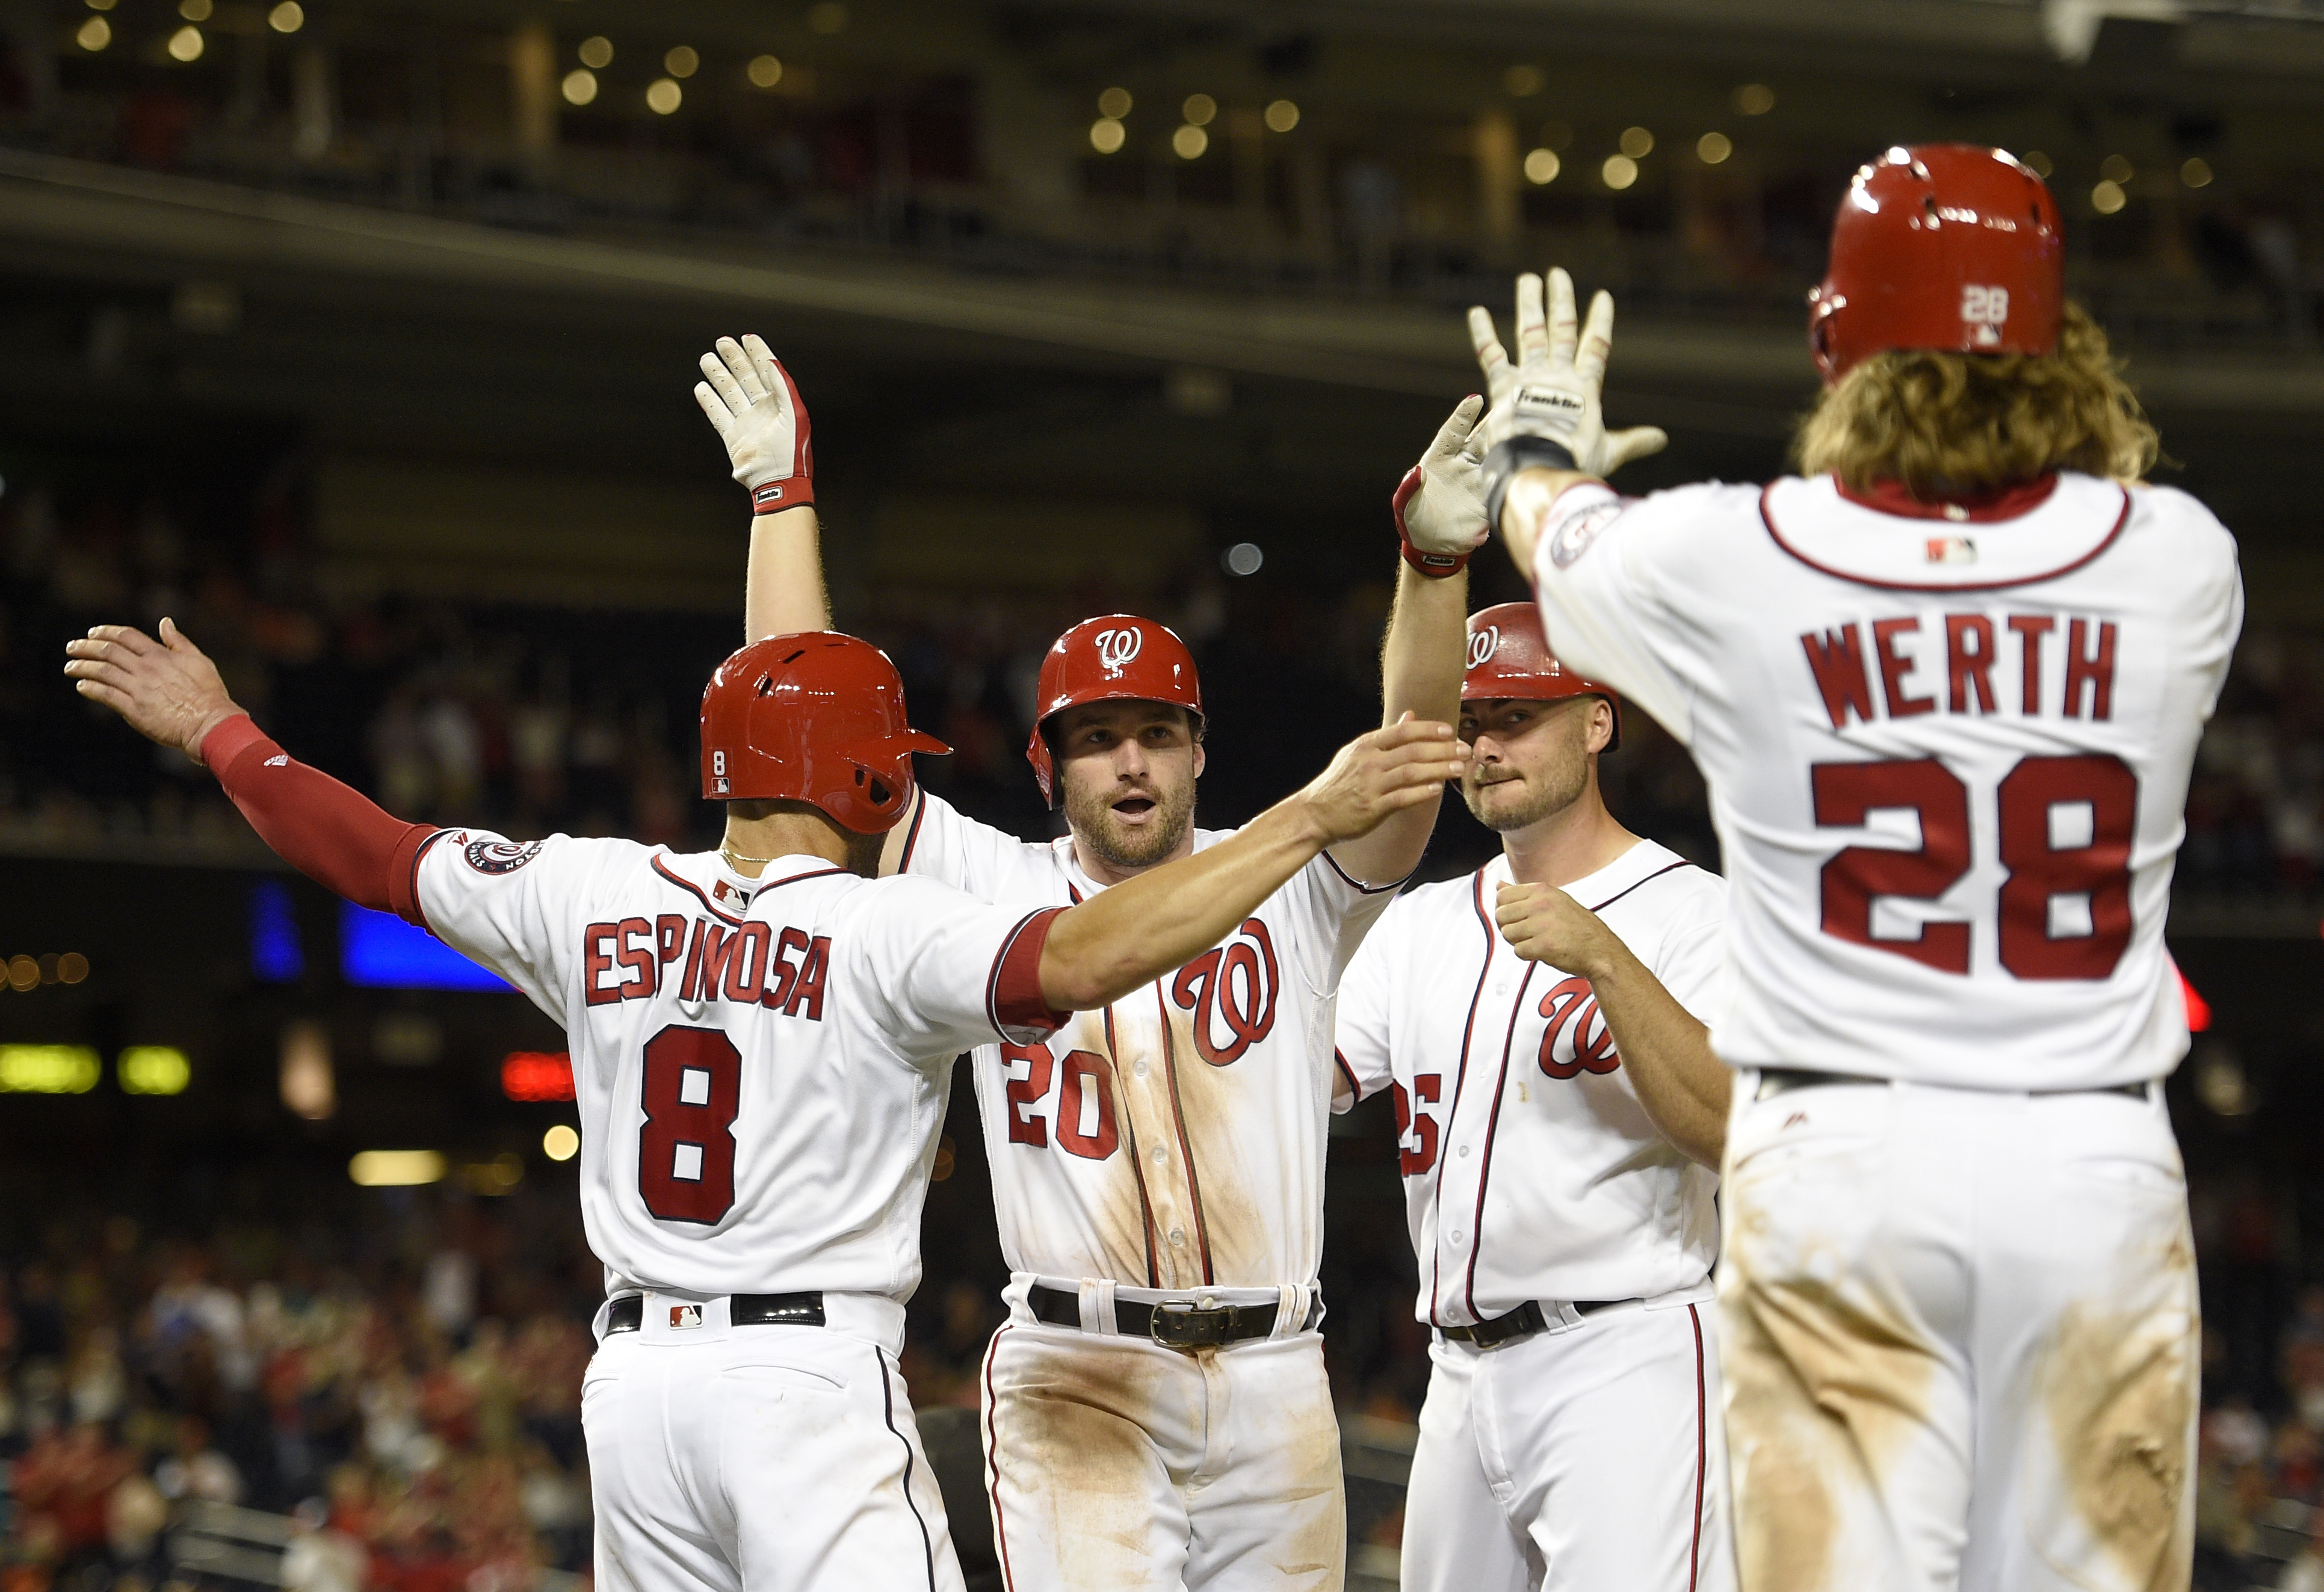 Washington Nationals' Daniel Murphy (20) celebrates his grand slam with Danny Espinosa (8), Jayson Werth (28) and Clint Robinson during the ninth inning of a baseball game against the Baltimore Orioles, Wednesday, Aug. 24, 2016, in Washington. The Orioles